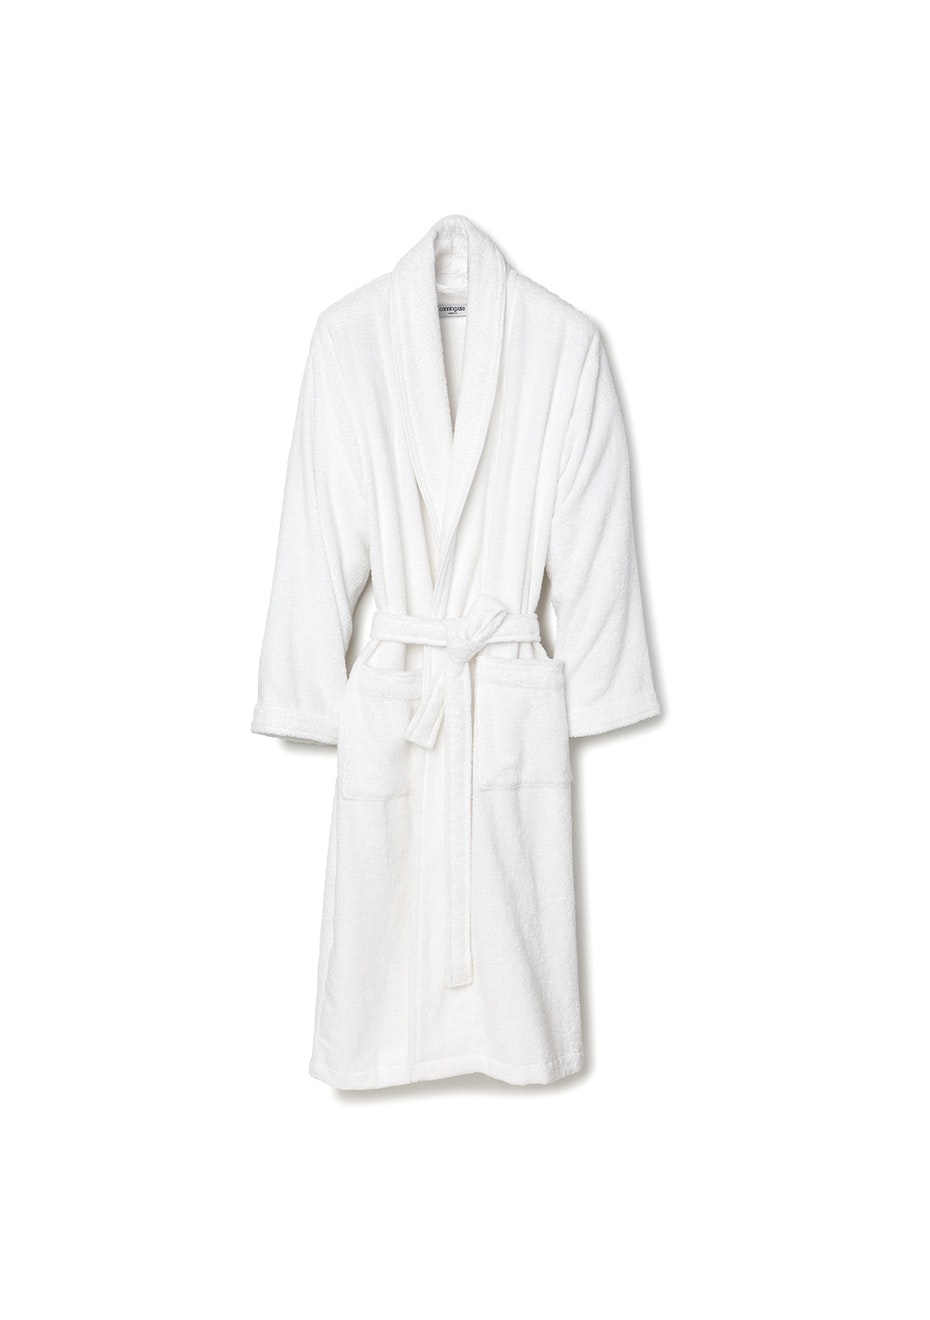 Canningvale - Large Classic Cotton Terry Bathrobe - White